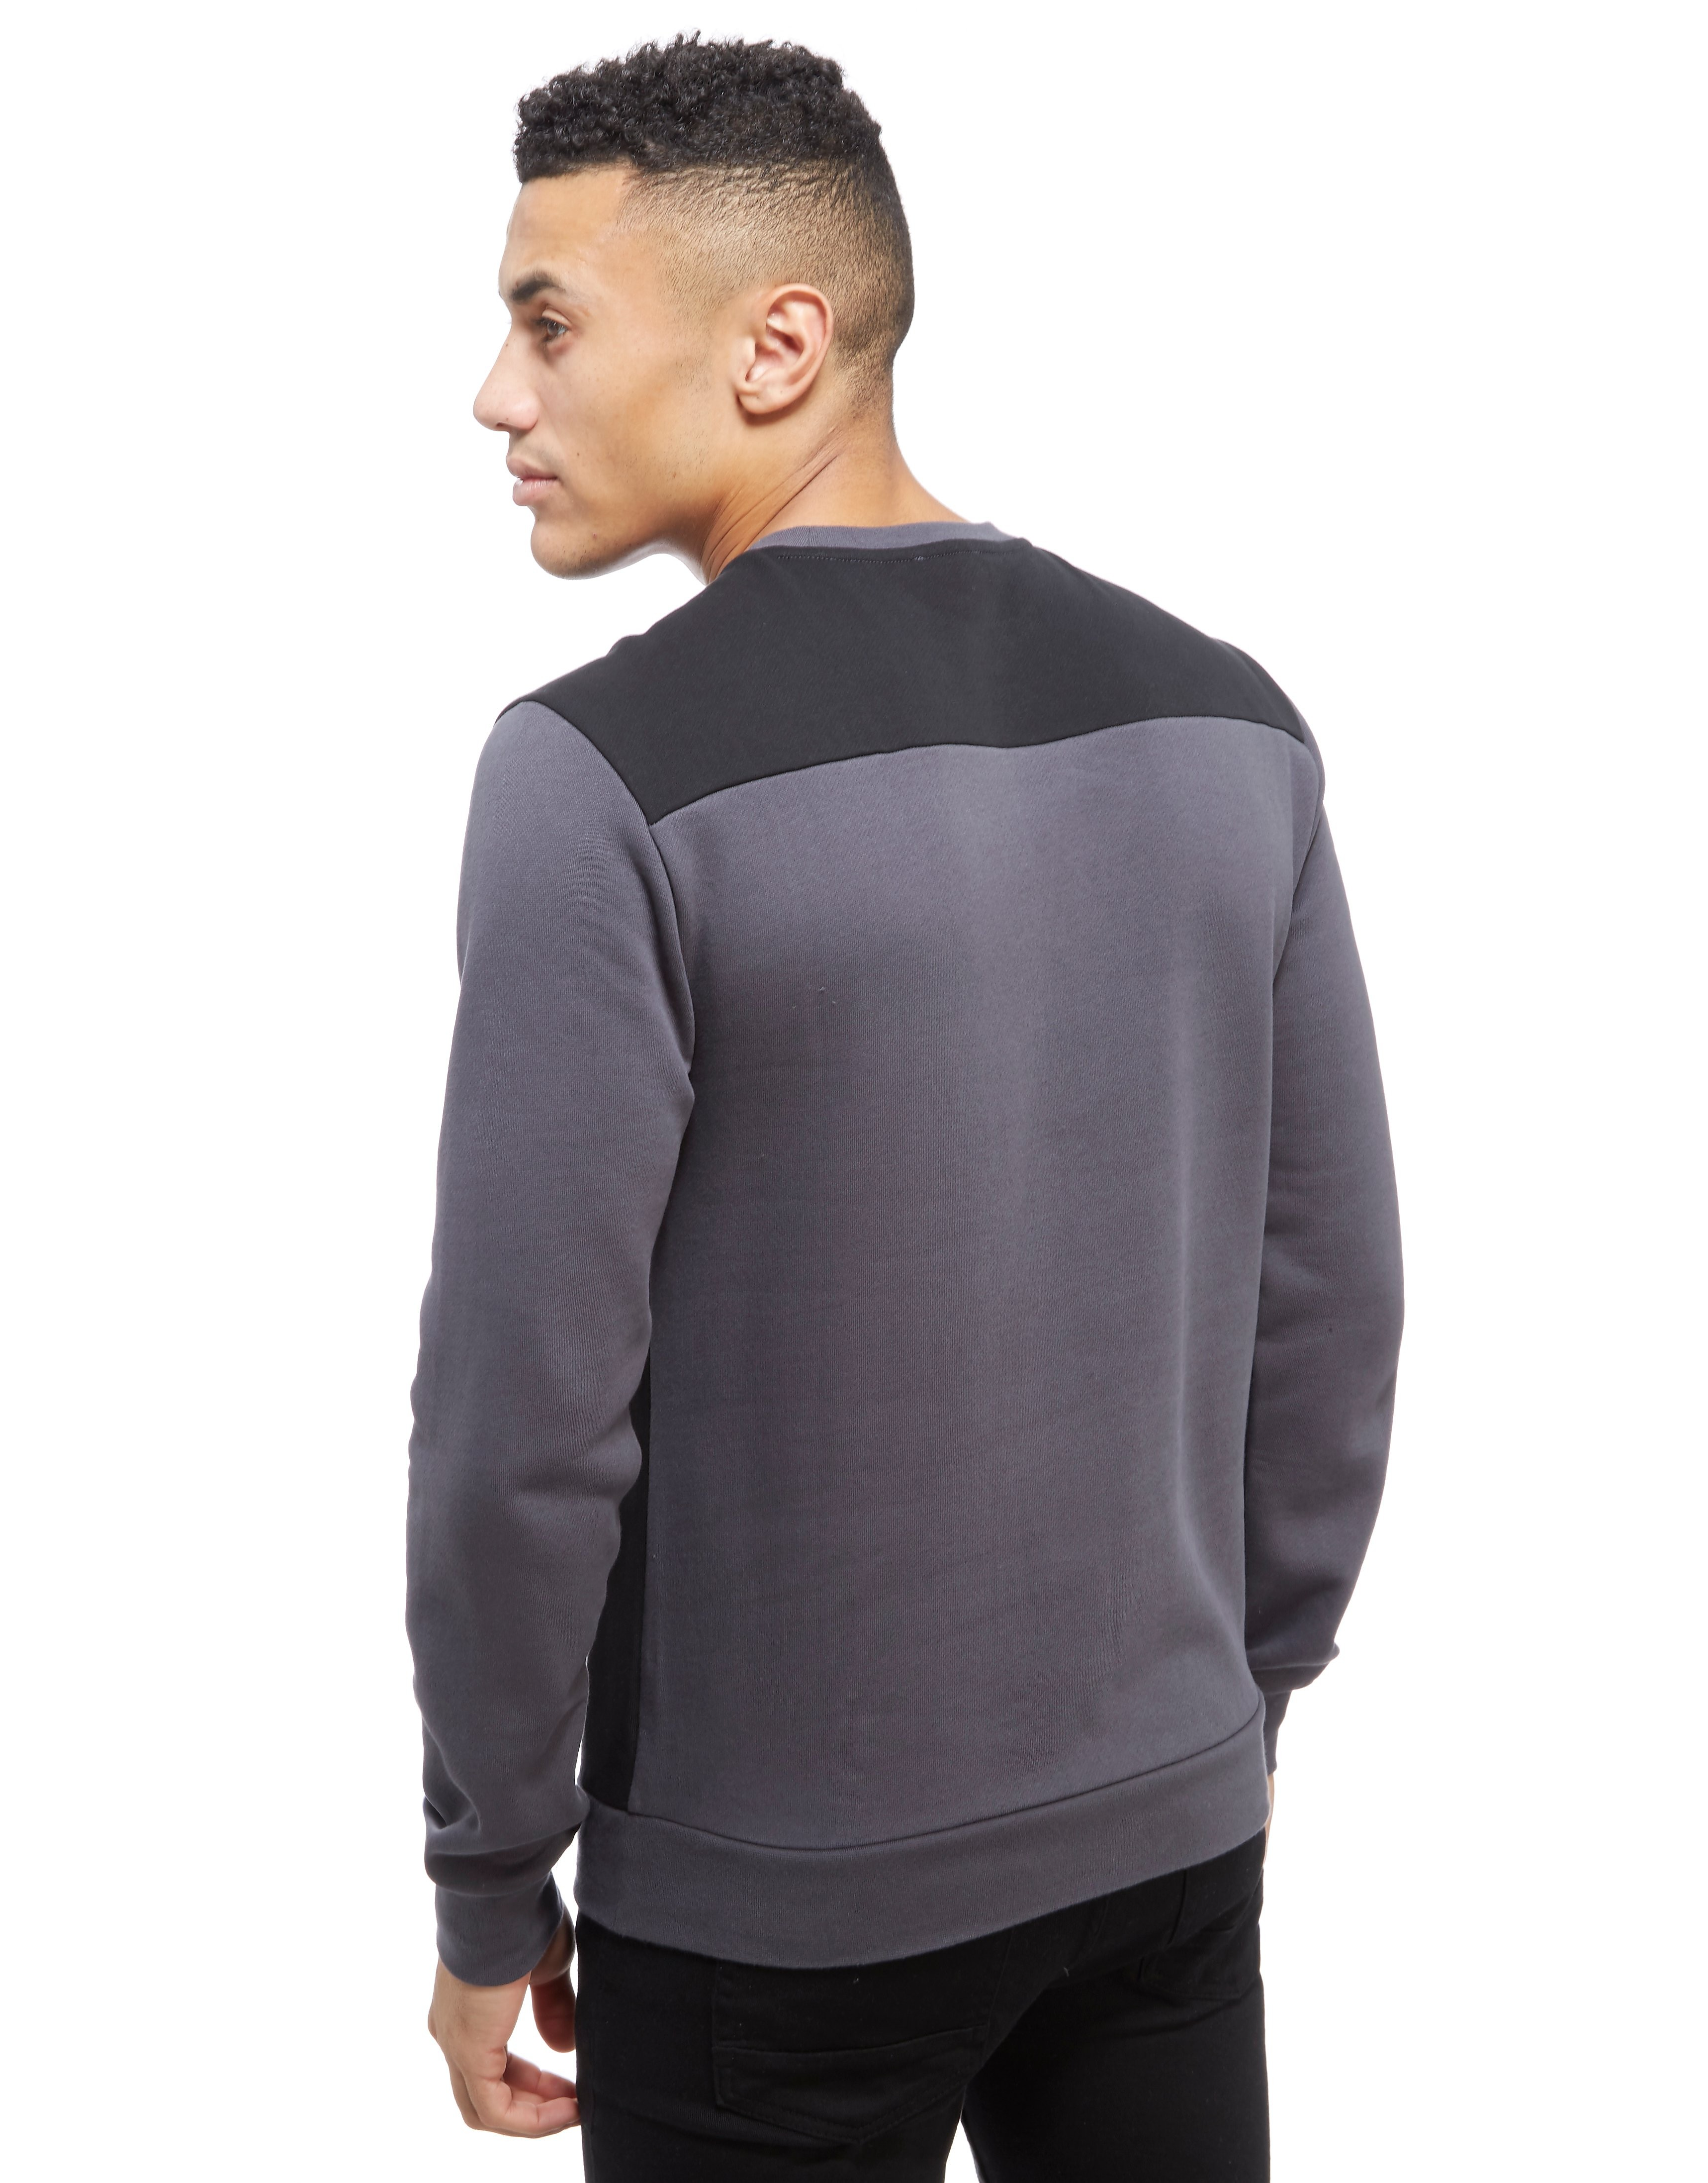 Emporio Armani EA7 Colour Block Crew Neck Sweatshirt